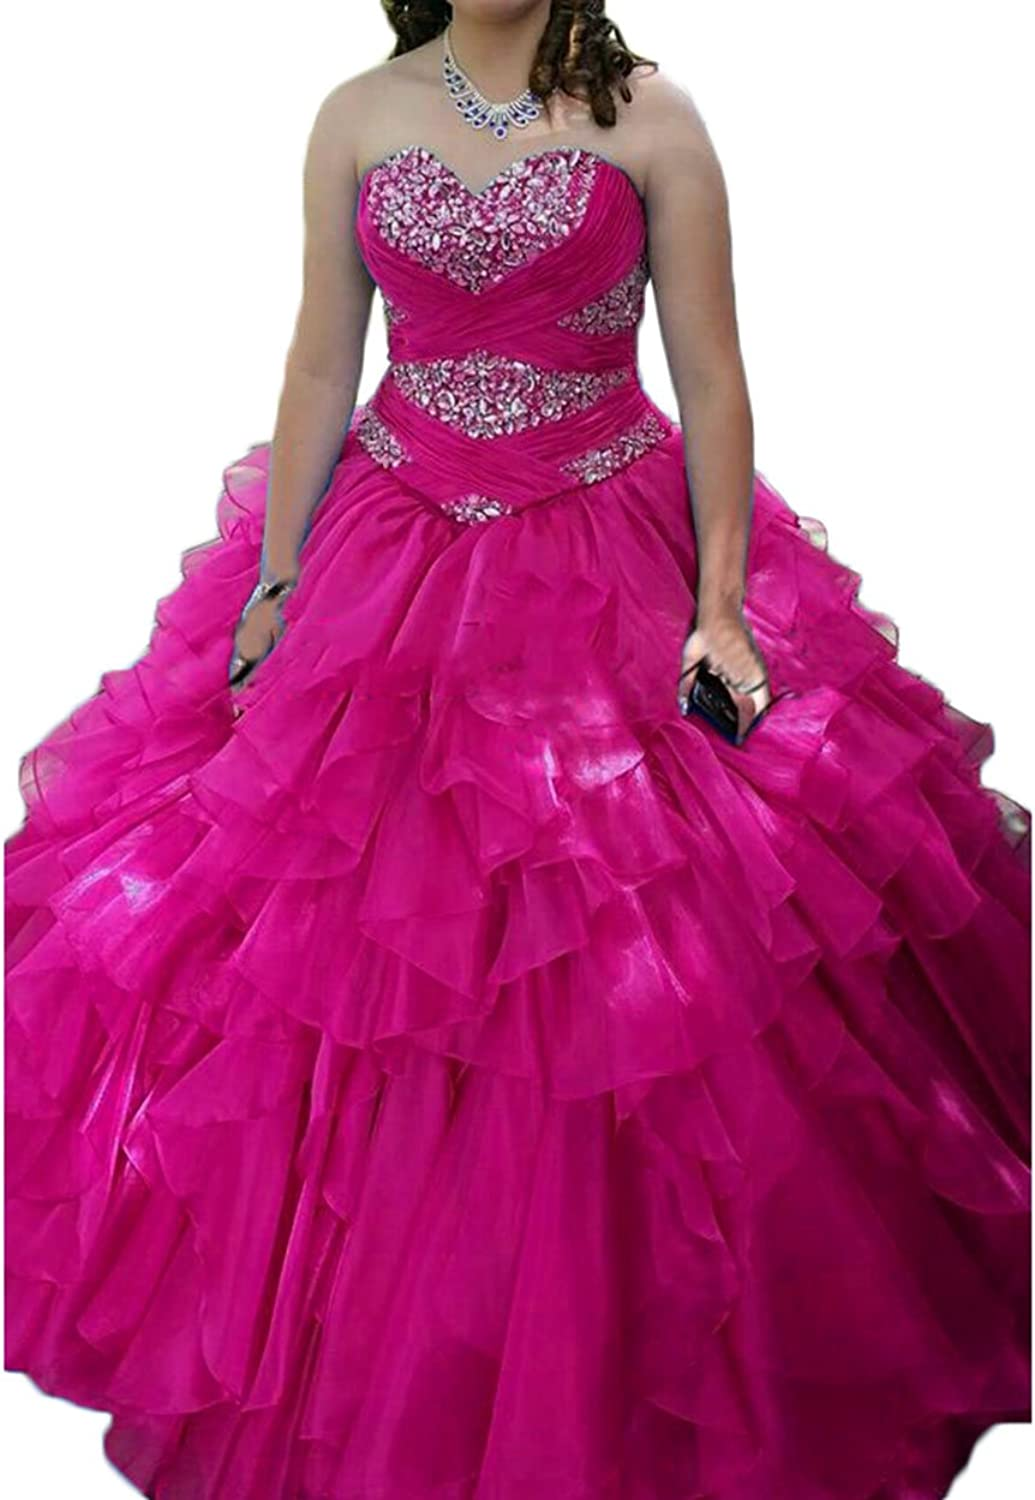 Alilith.Z Sexy Sweetheart Puffy Princess Prom Dresses Long Beaded Quinceanera Dresses Ball Gown Women 2018 New